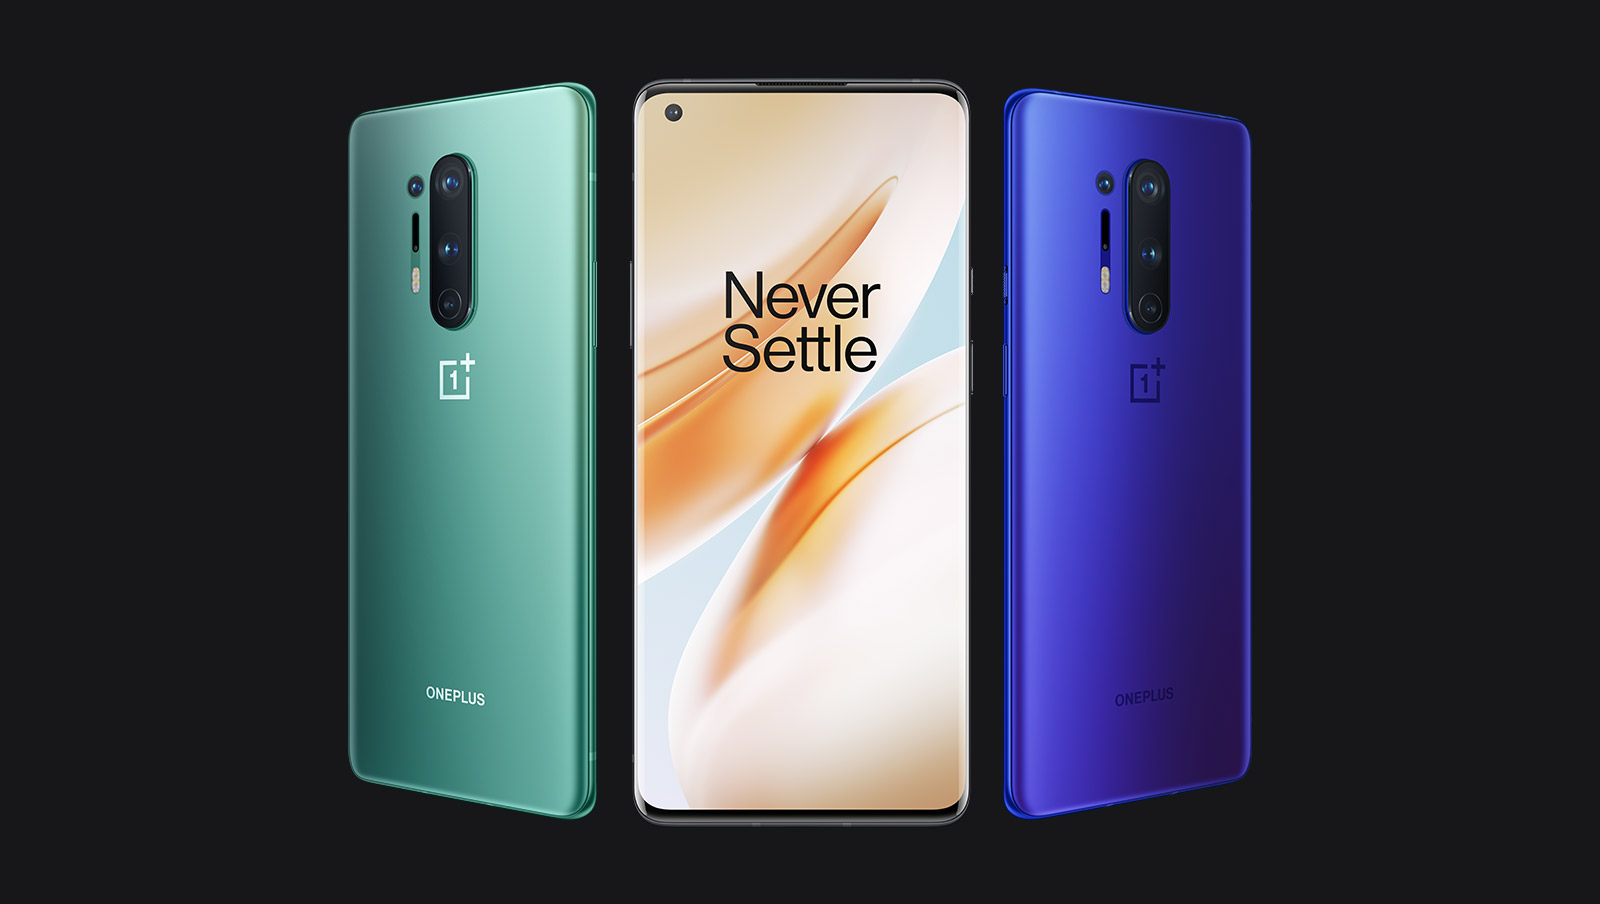 OnePlus 8 Pro See Through Camera Filter Is Being Disabled